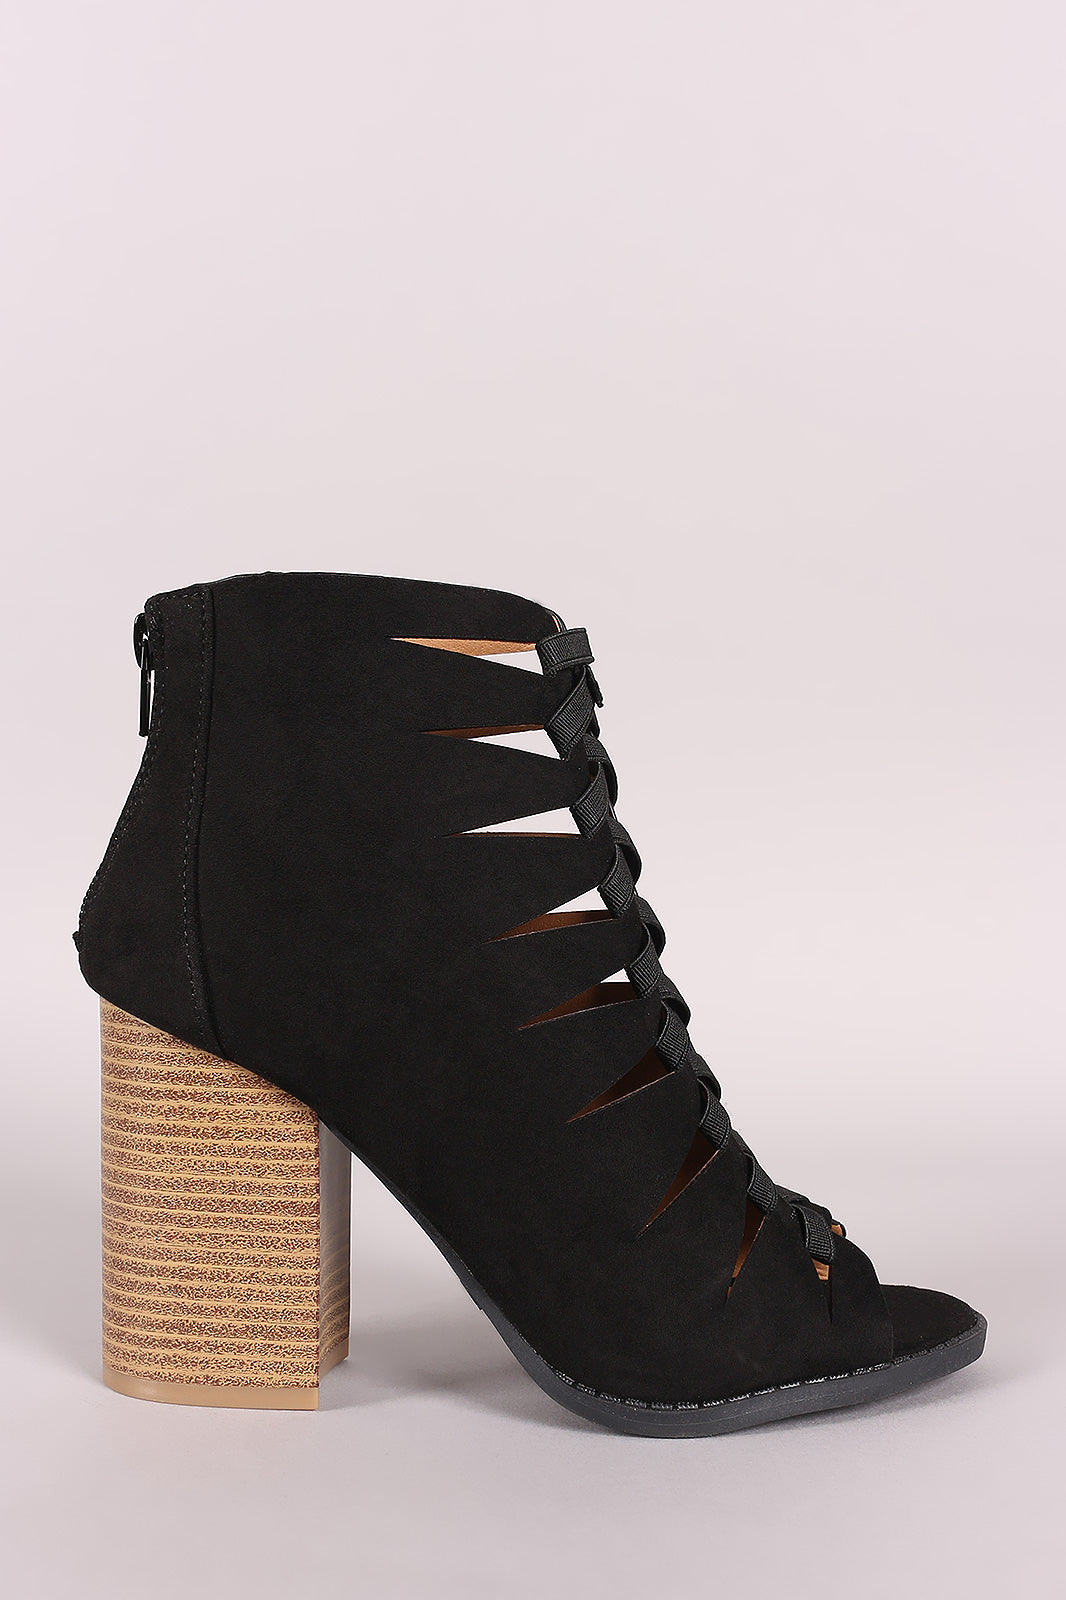 Tessa Cutout Peep Toe Booties - Black/Pink